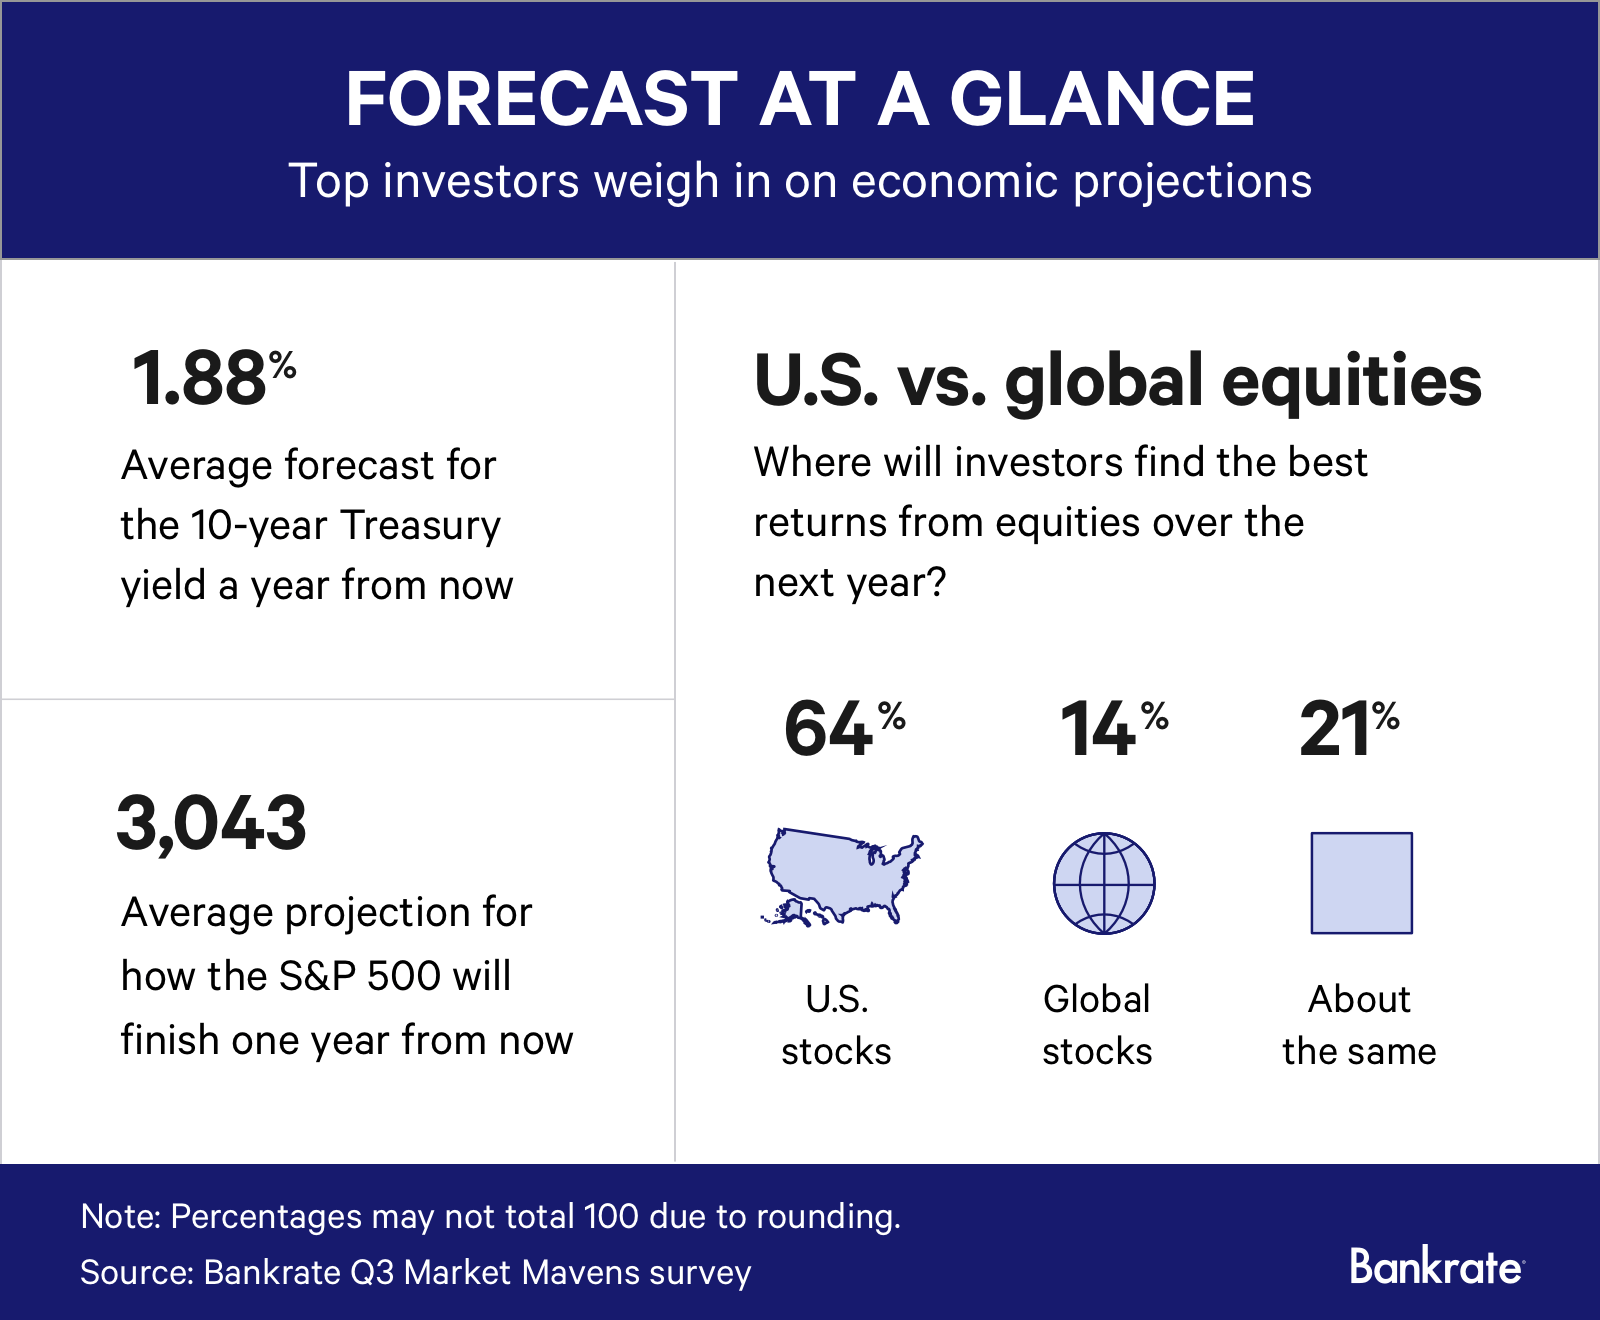 Market professionals' projections for the third quarter of 2019